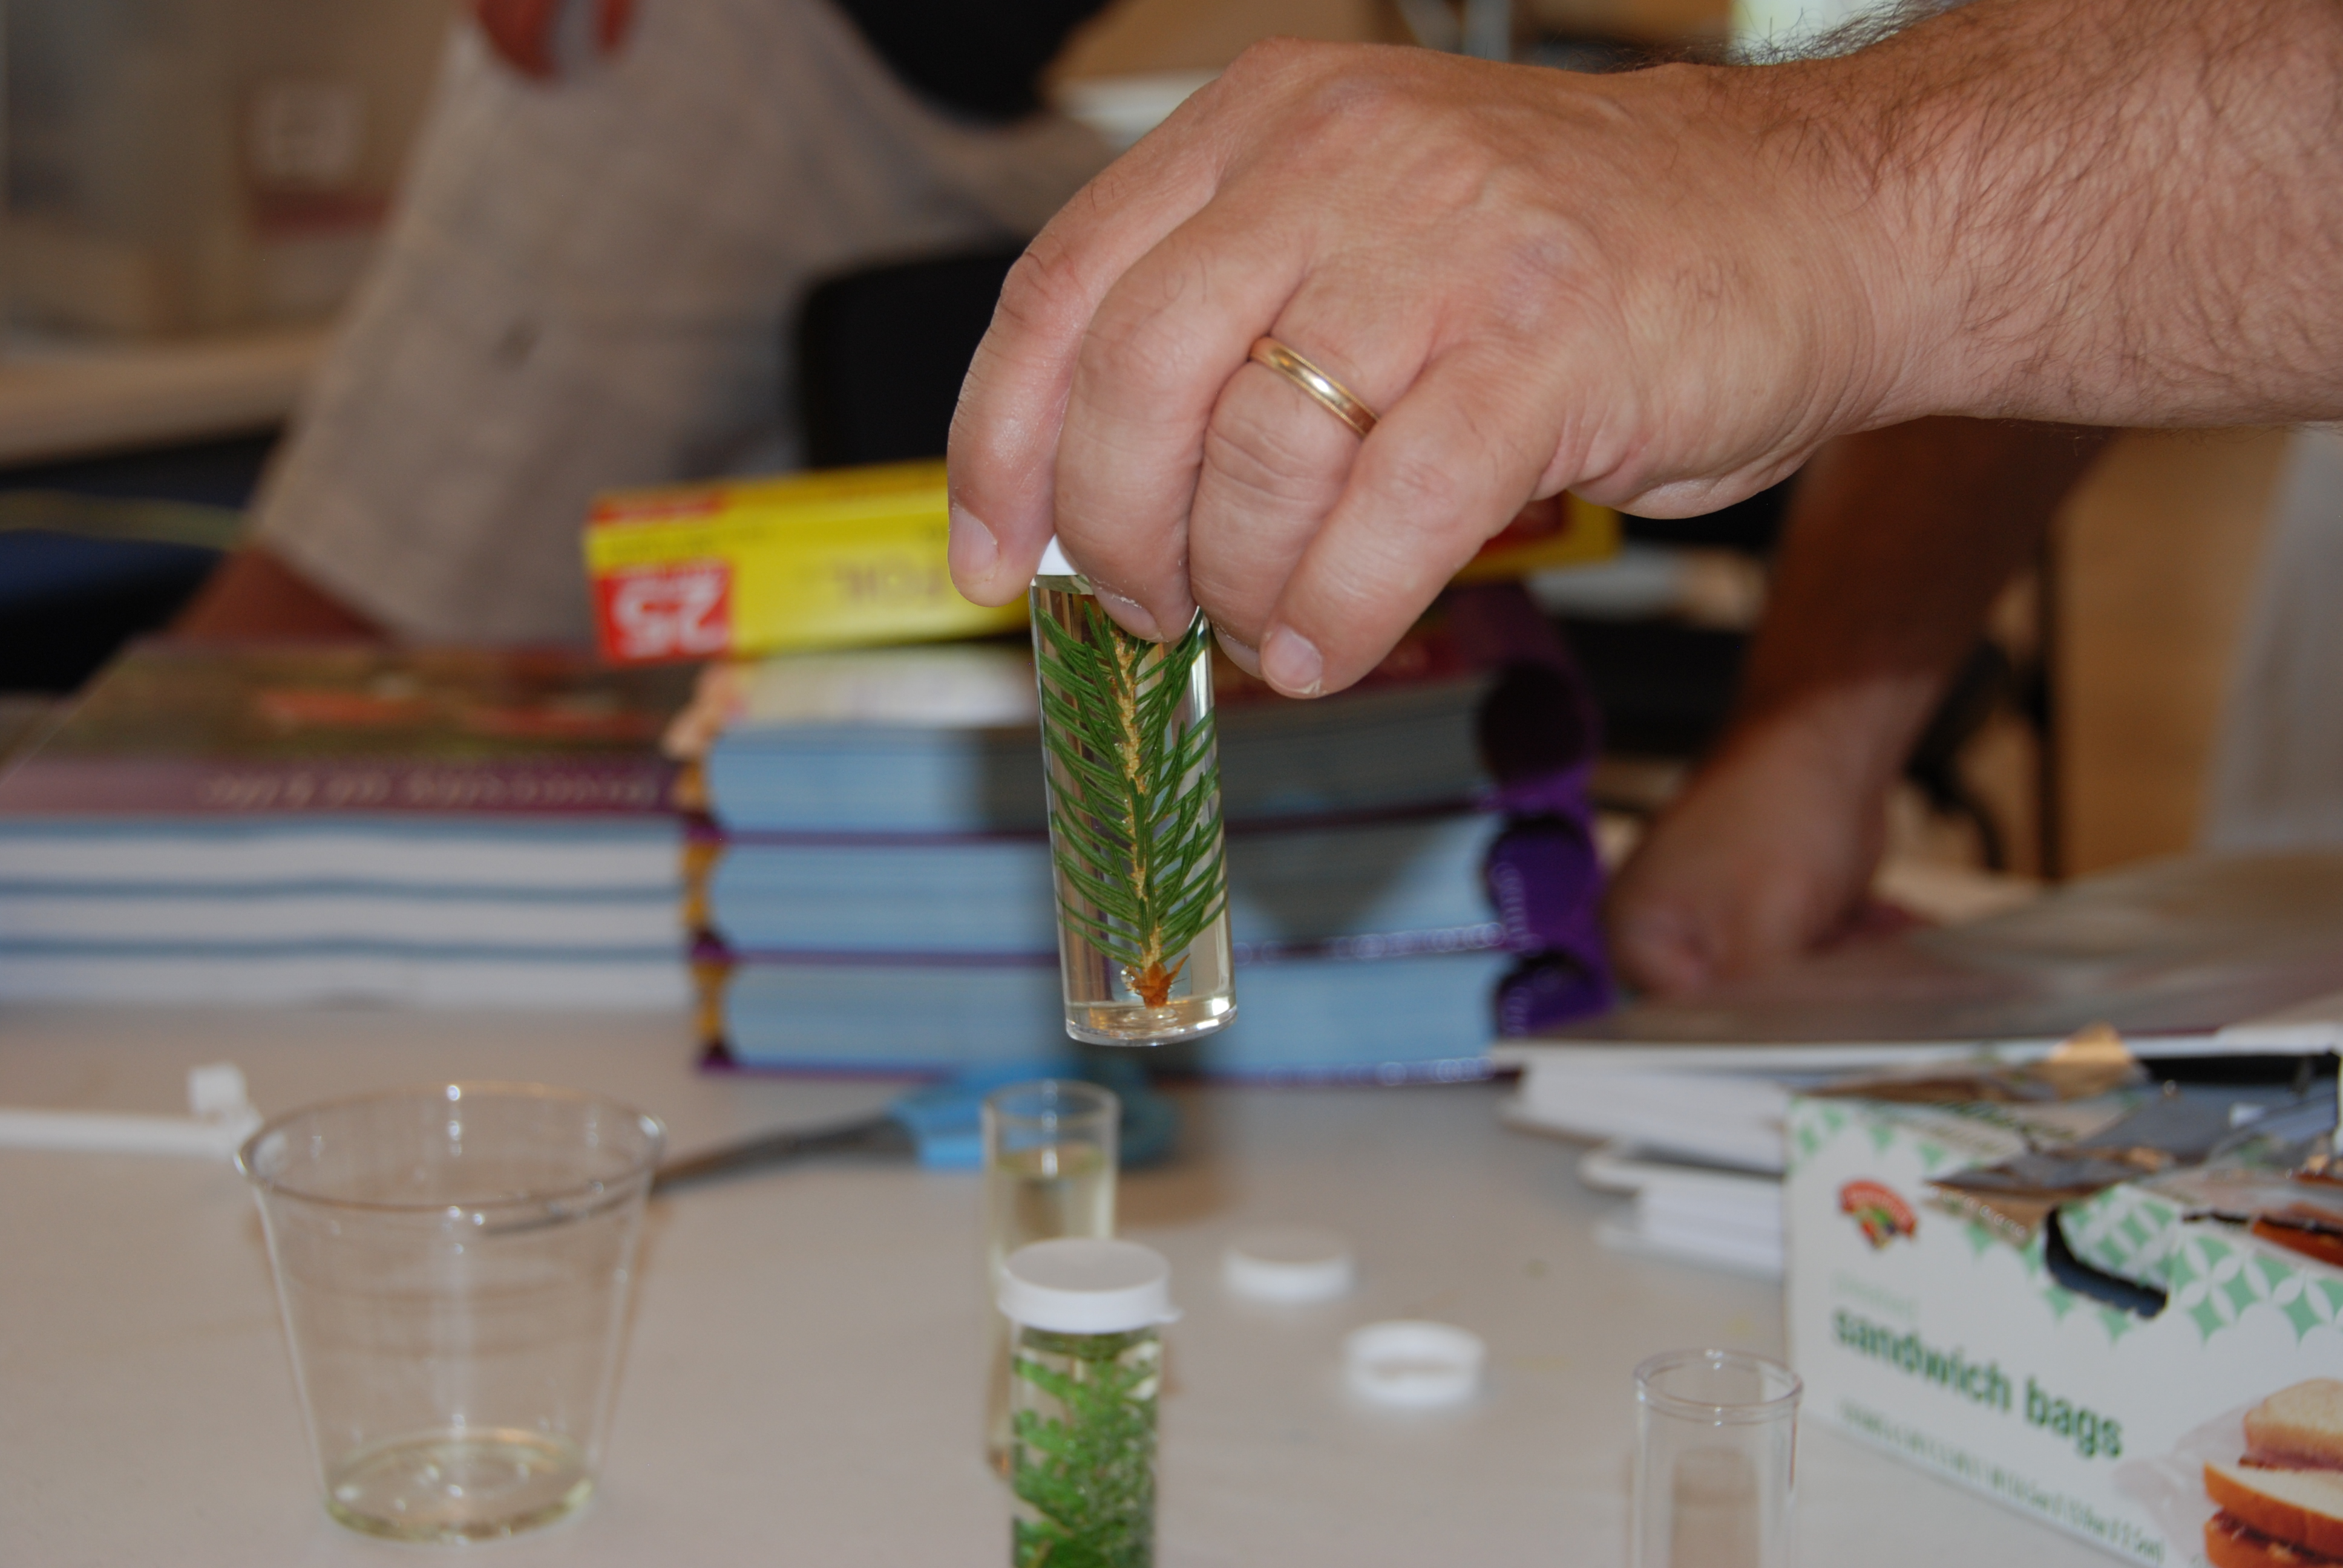 Life Science experiment about respiration